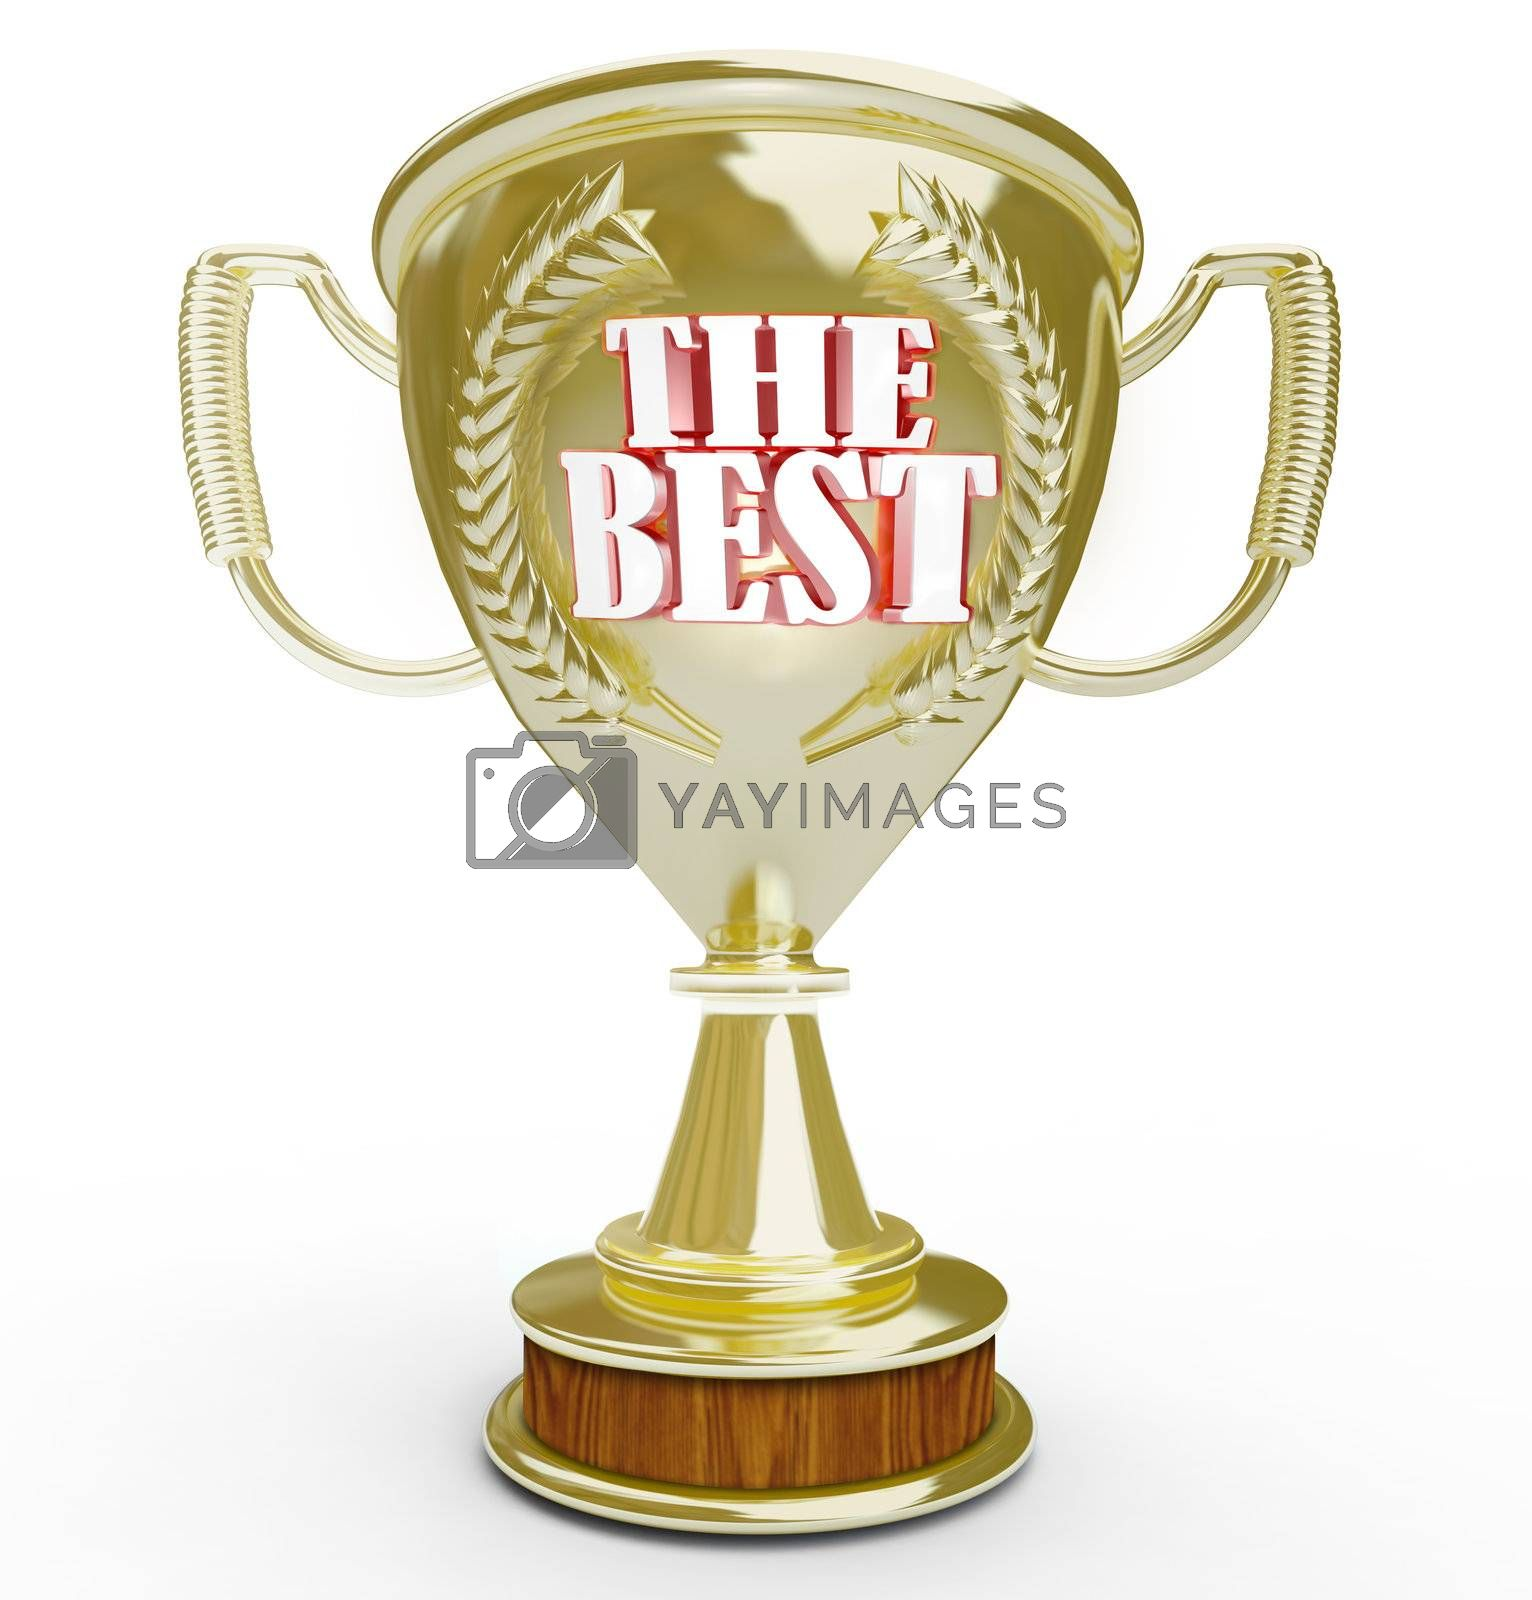 The Best words on a golden trophy awarded to the winner of a competition or a group or company deemed top in customer service, product quality or some other comparison